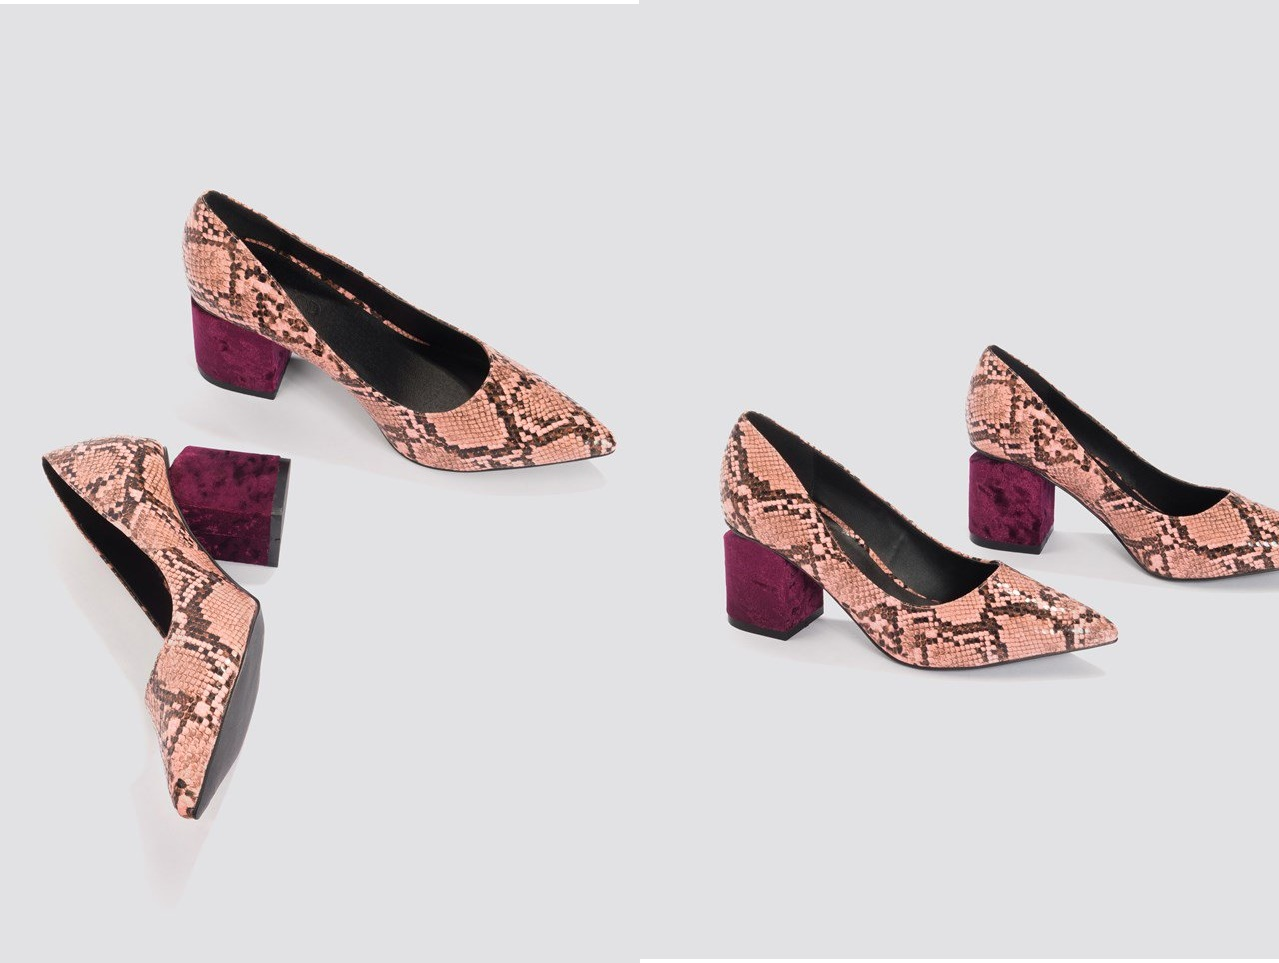 nakd_cut_out_heel_snake_pumps_1055-000137-0752_03m_r